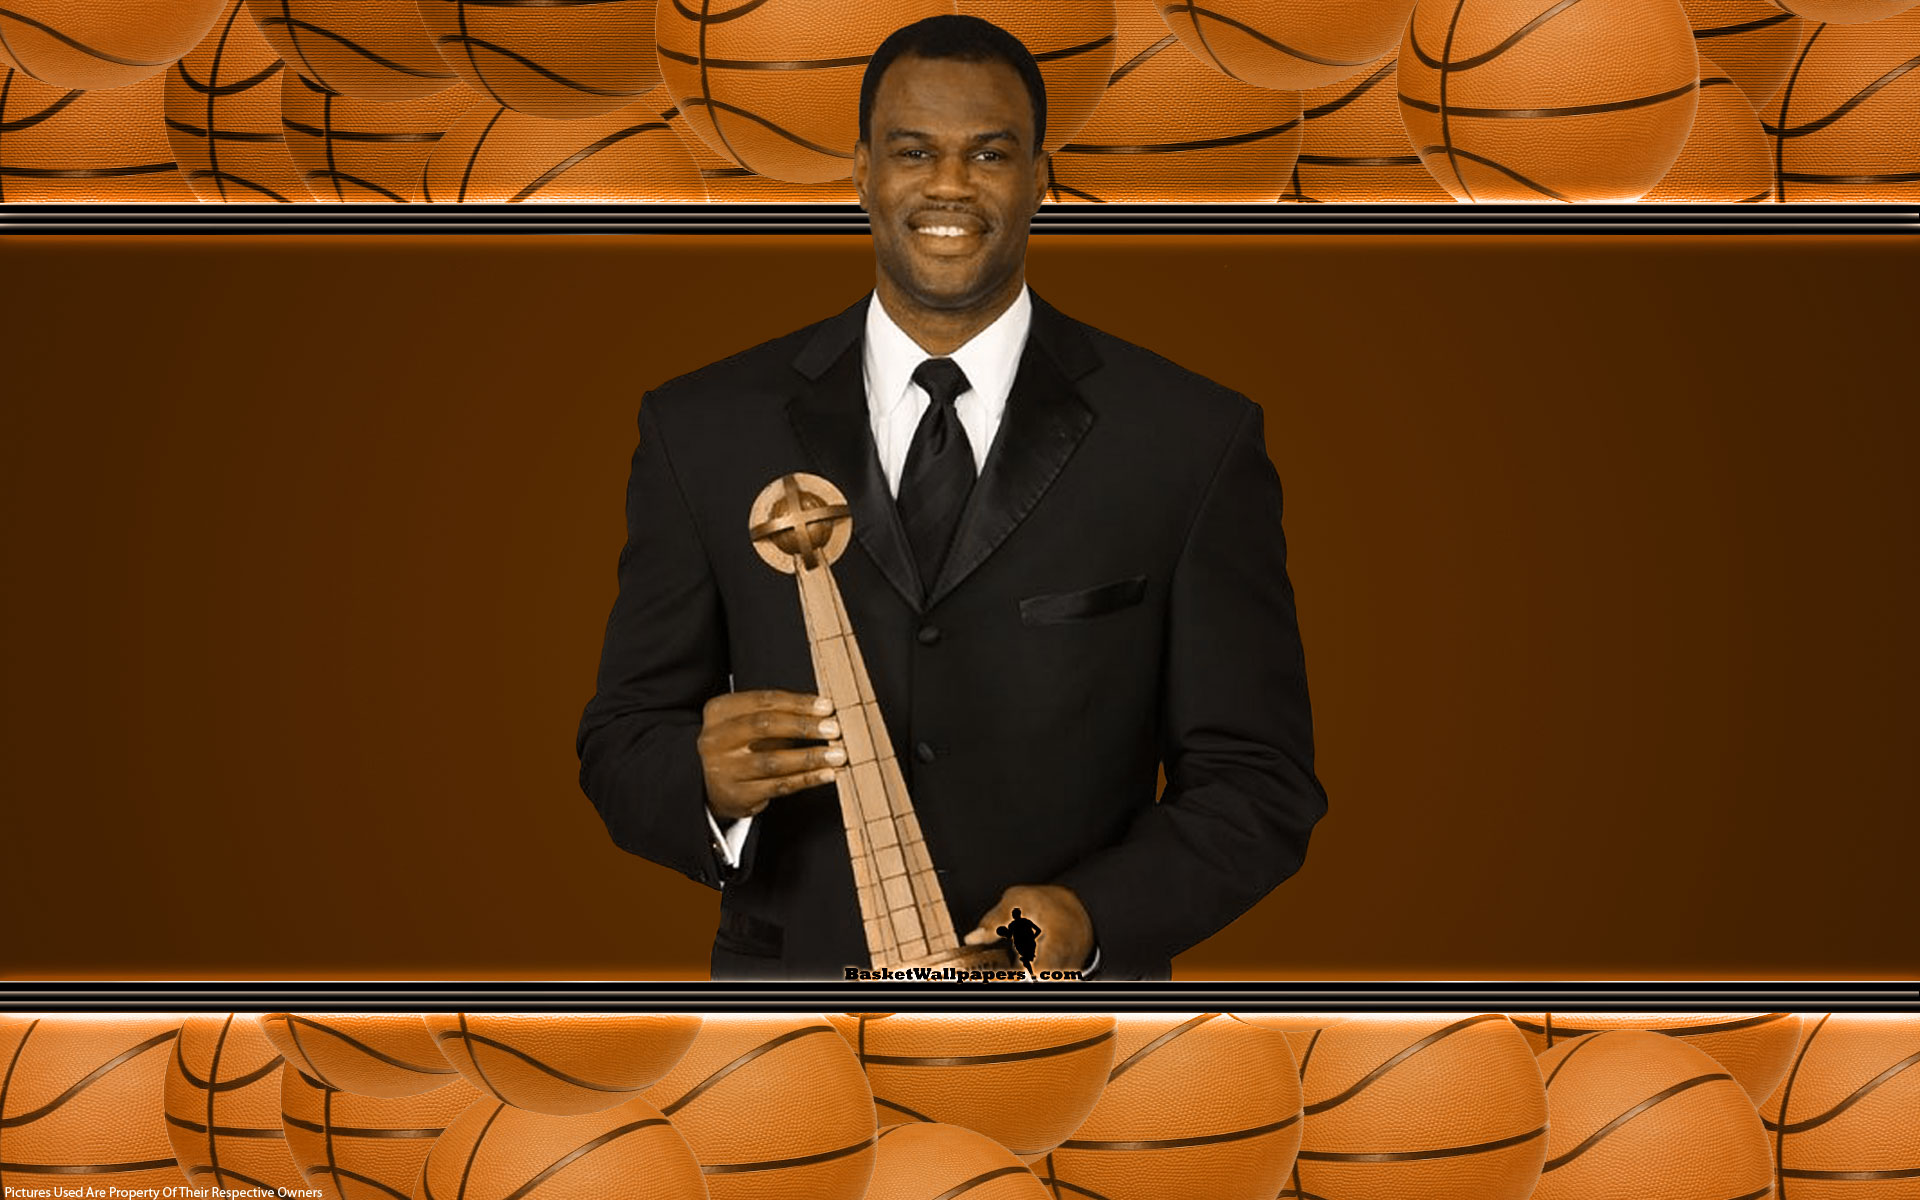 David Robinson Wallpapers and Background Images   stmednet 1920x1200